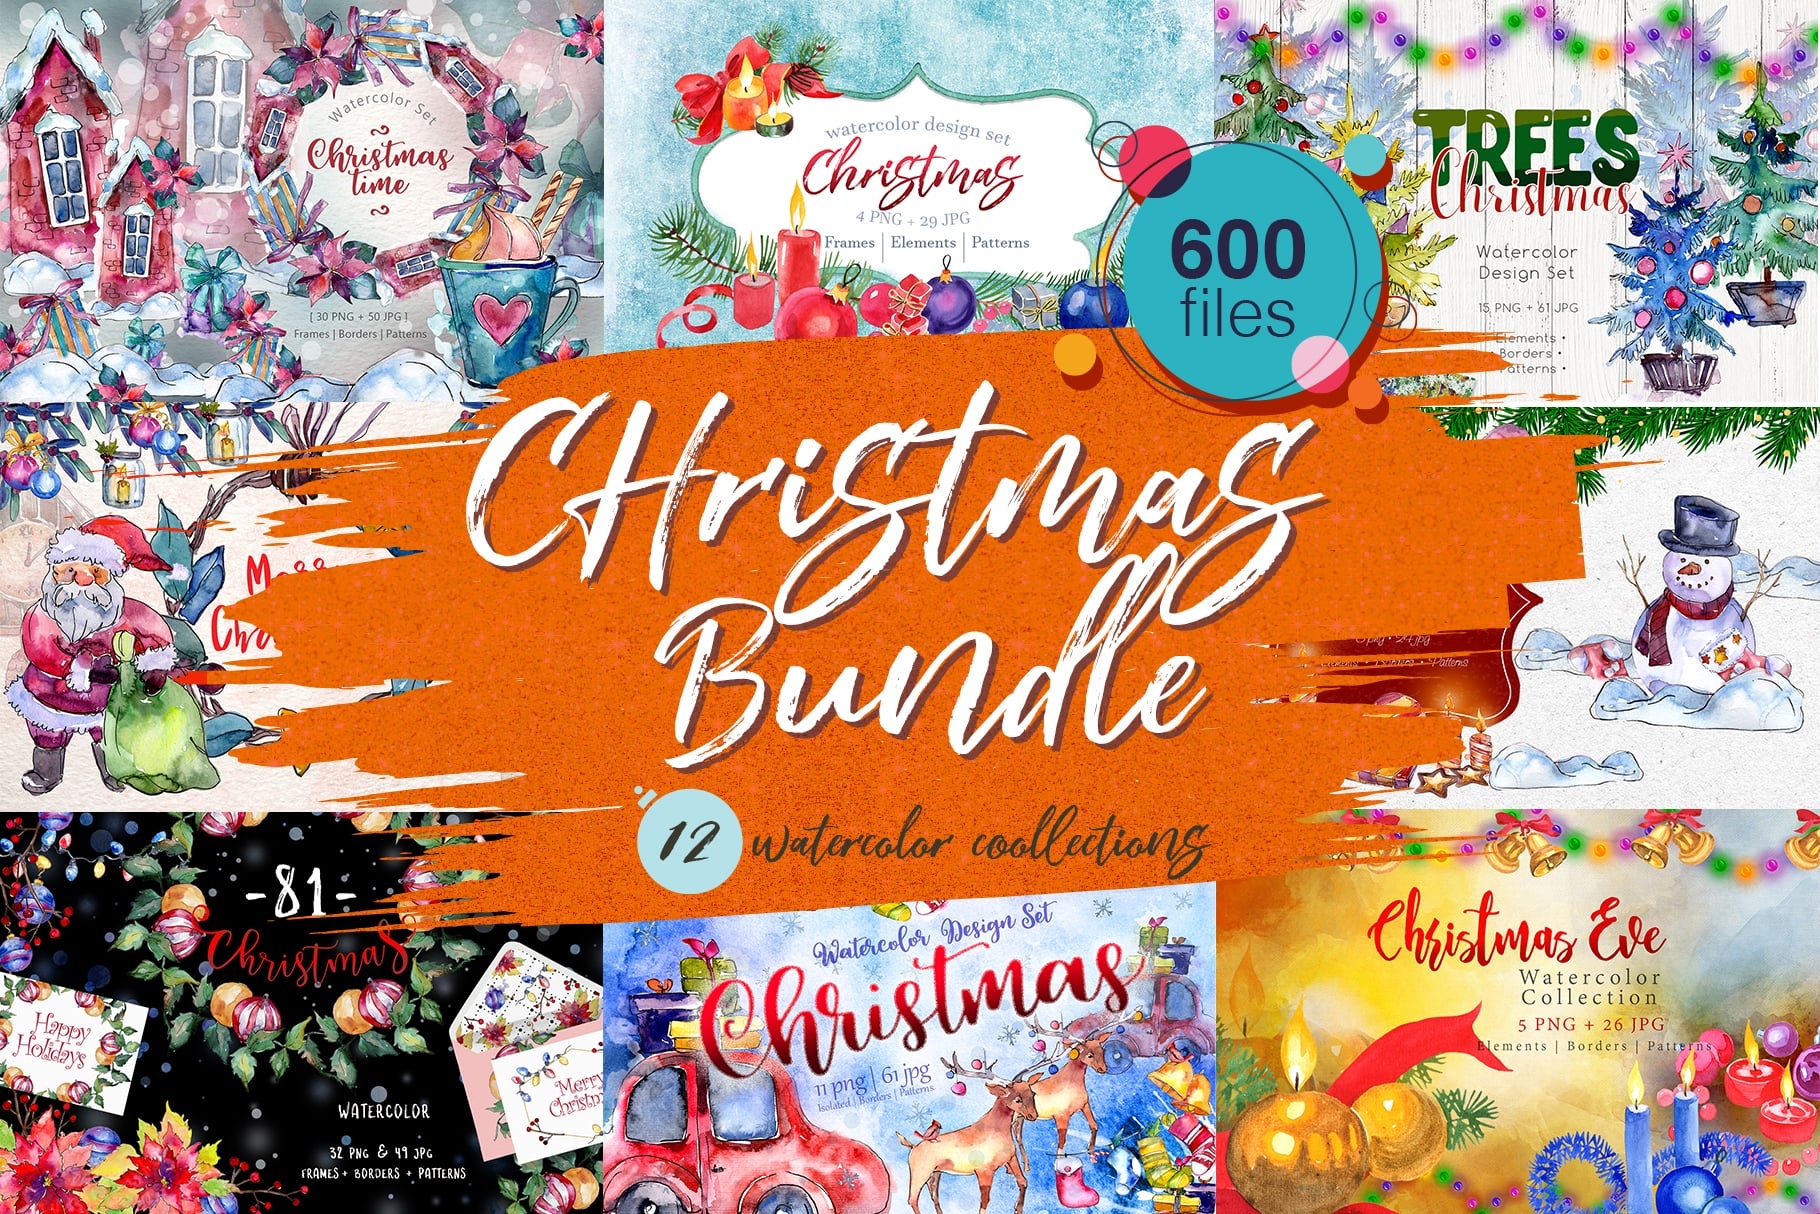 Huge Watercolor Christmas Bundle, 600+ files, 11 collections - MYSTOCKS 5011 cover 1